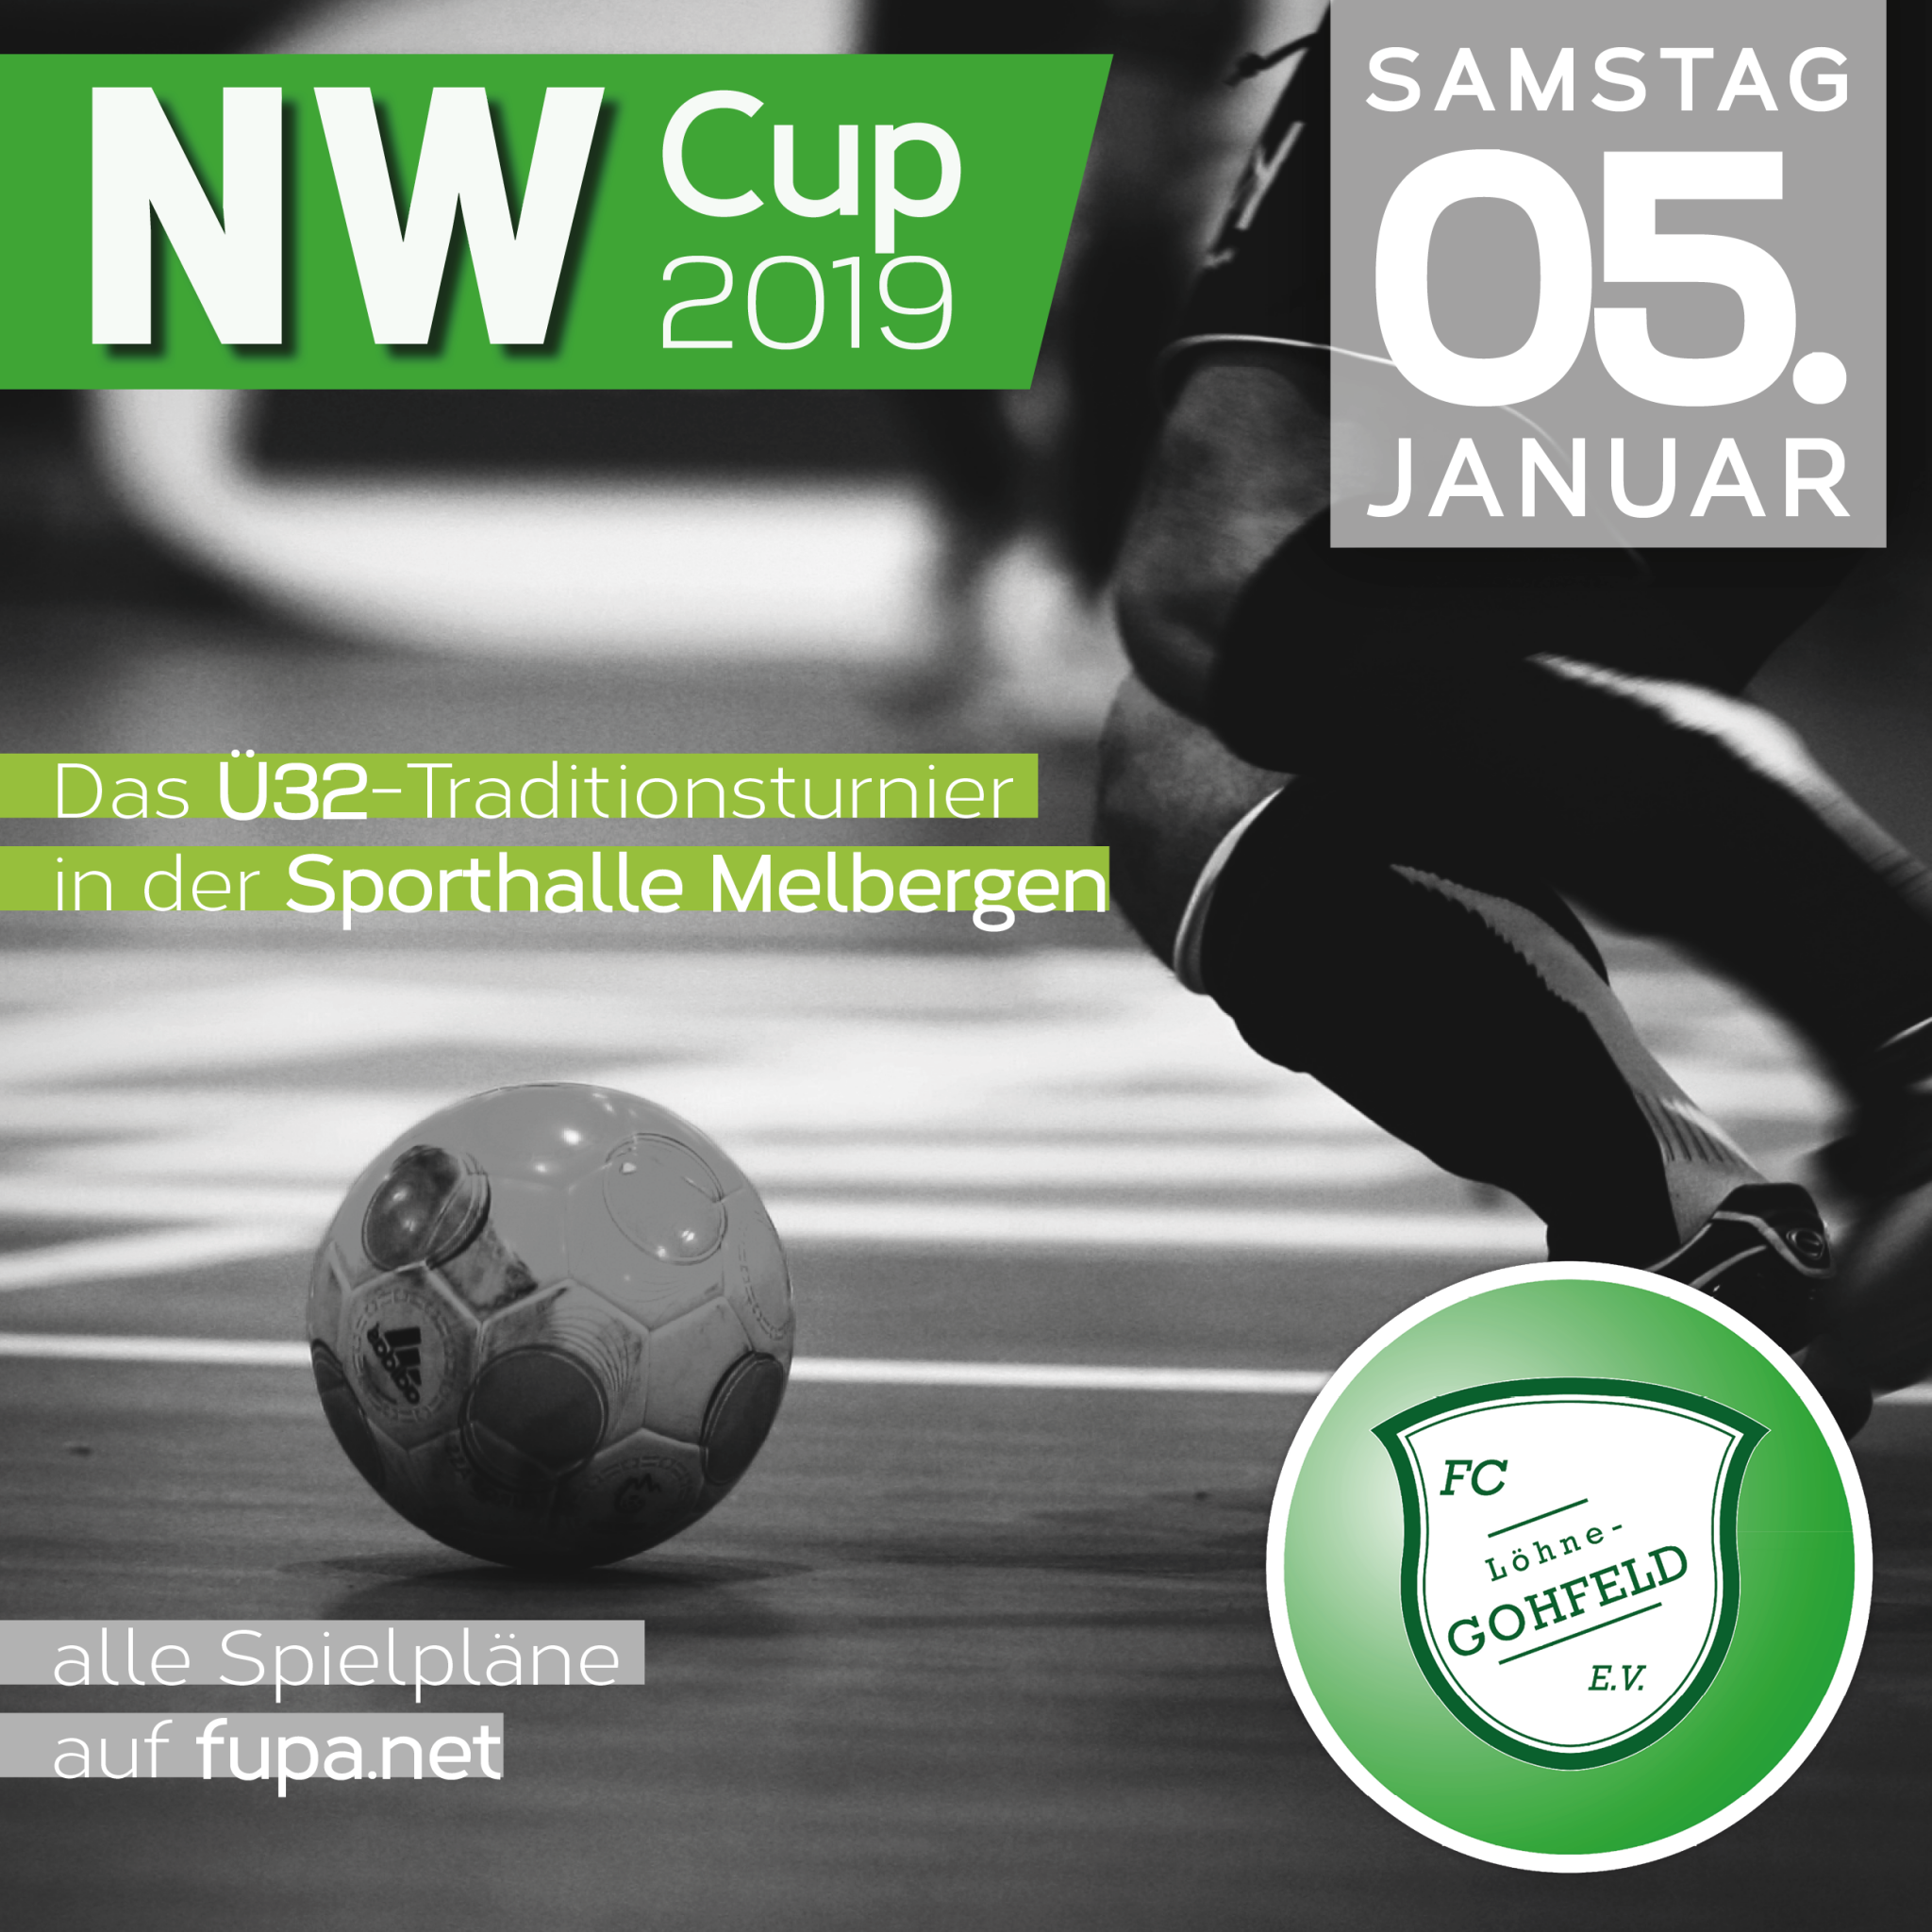 NW Cup 2019